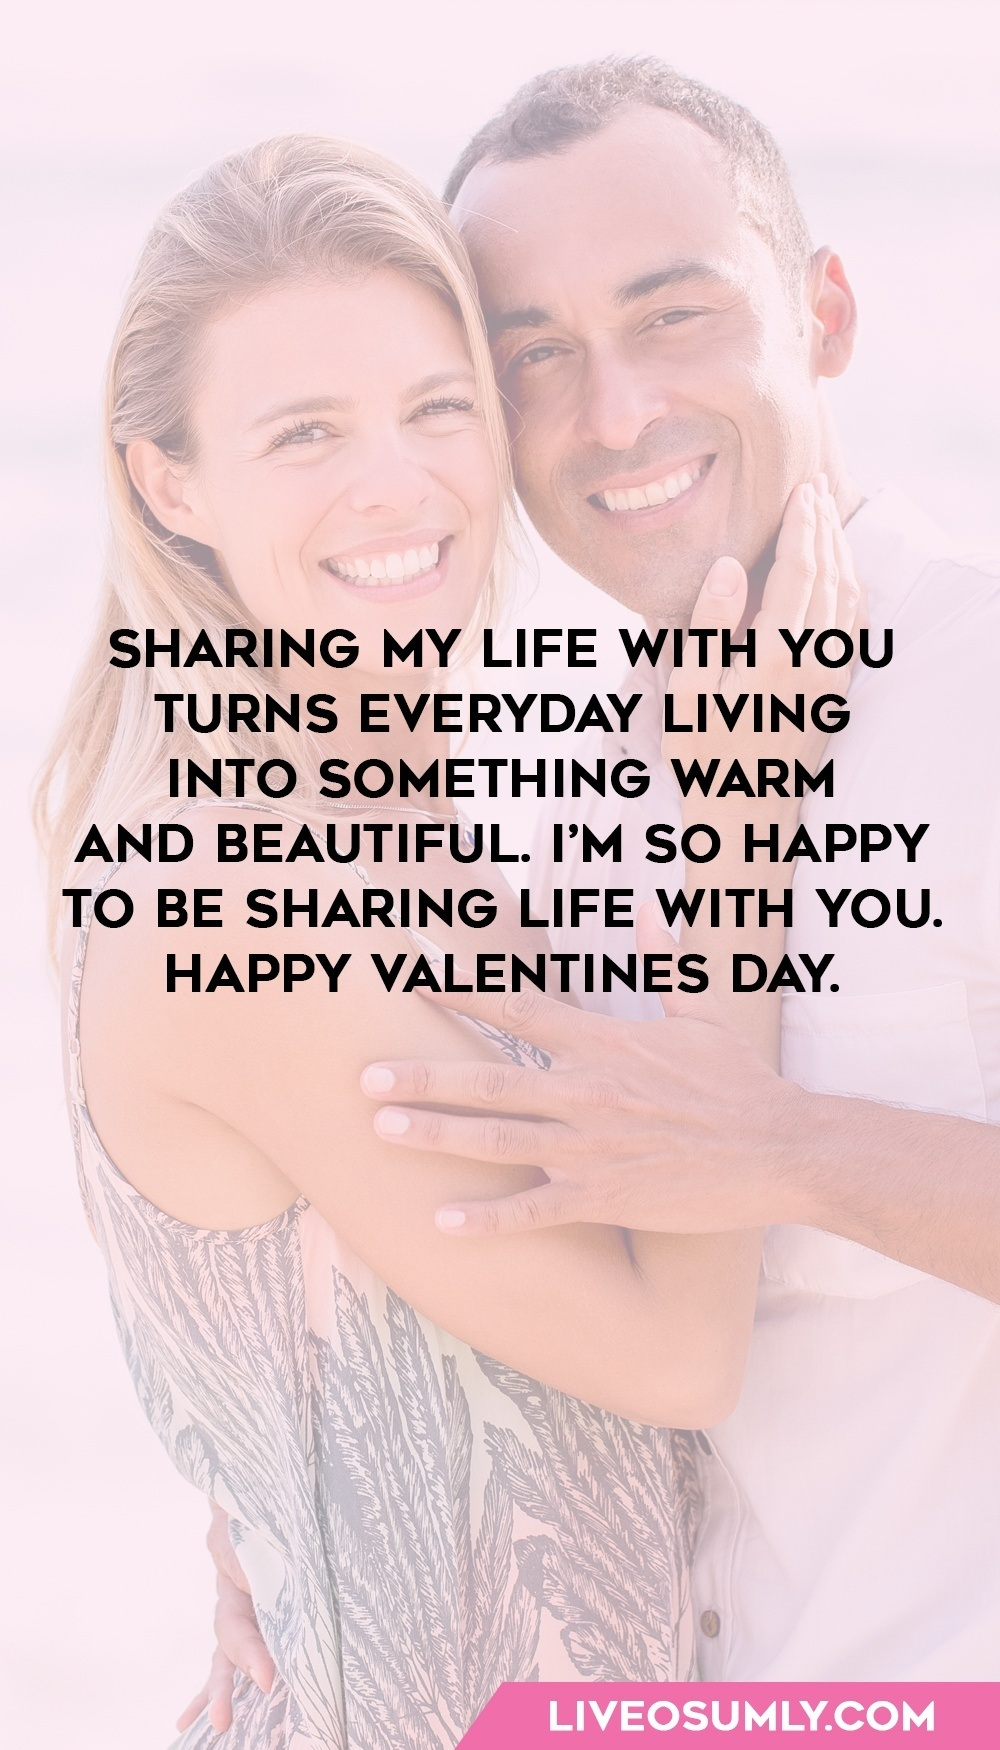 49. Best Lovers Day Quotes